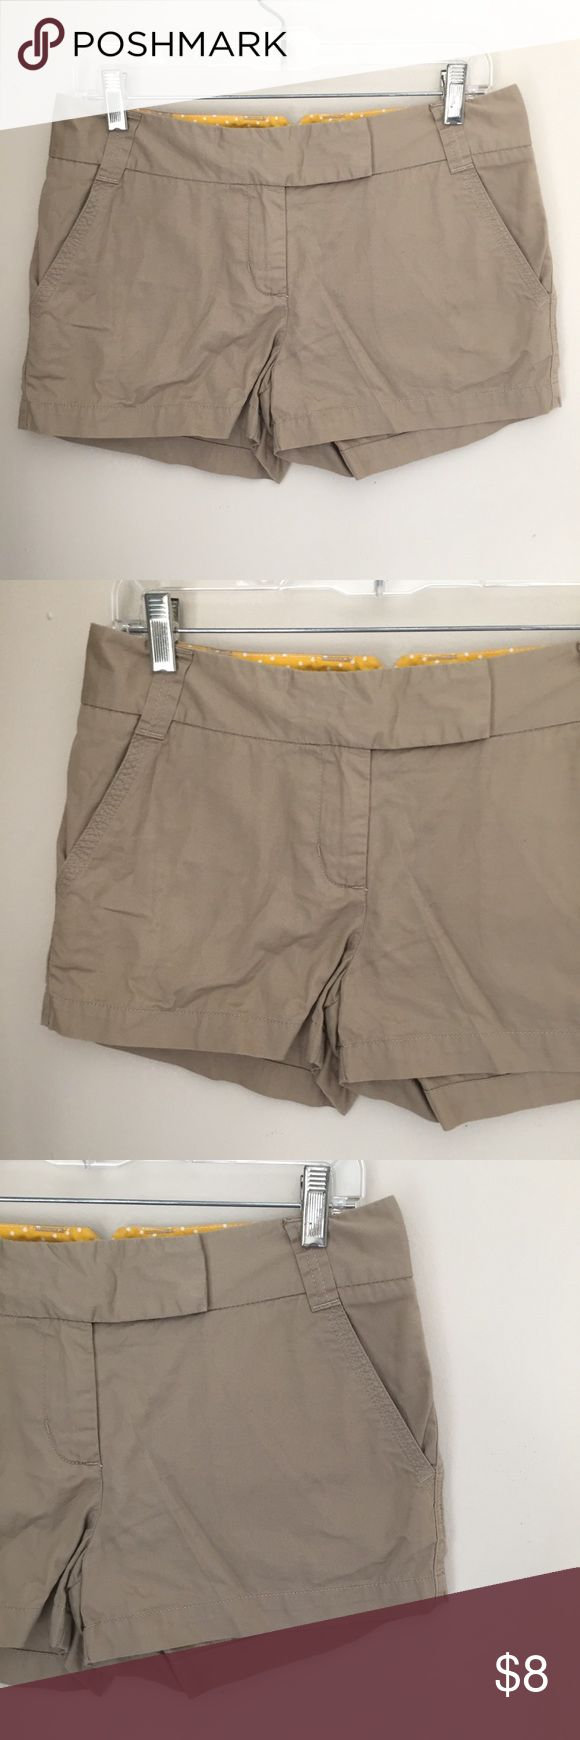 "Women's Khaki Shorts J Crew Tan Chino Short 4 11"" Long 16"" Wide 3"" Inseam  Casual and classic short.  Perfect to pack for vacation. J Crew Shorts"